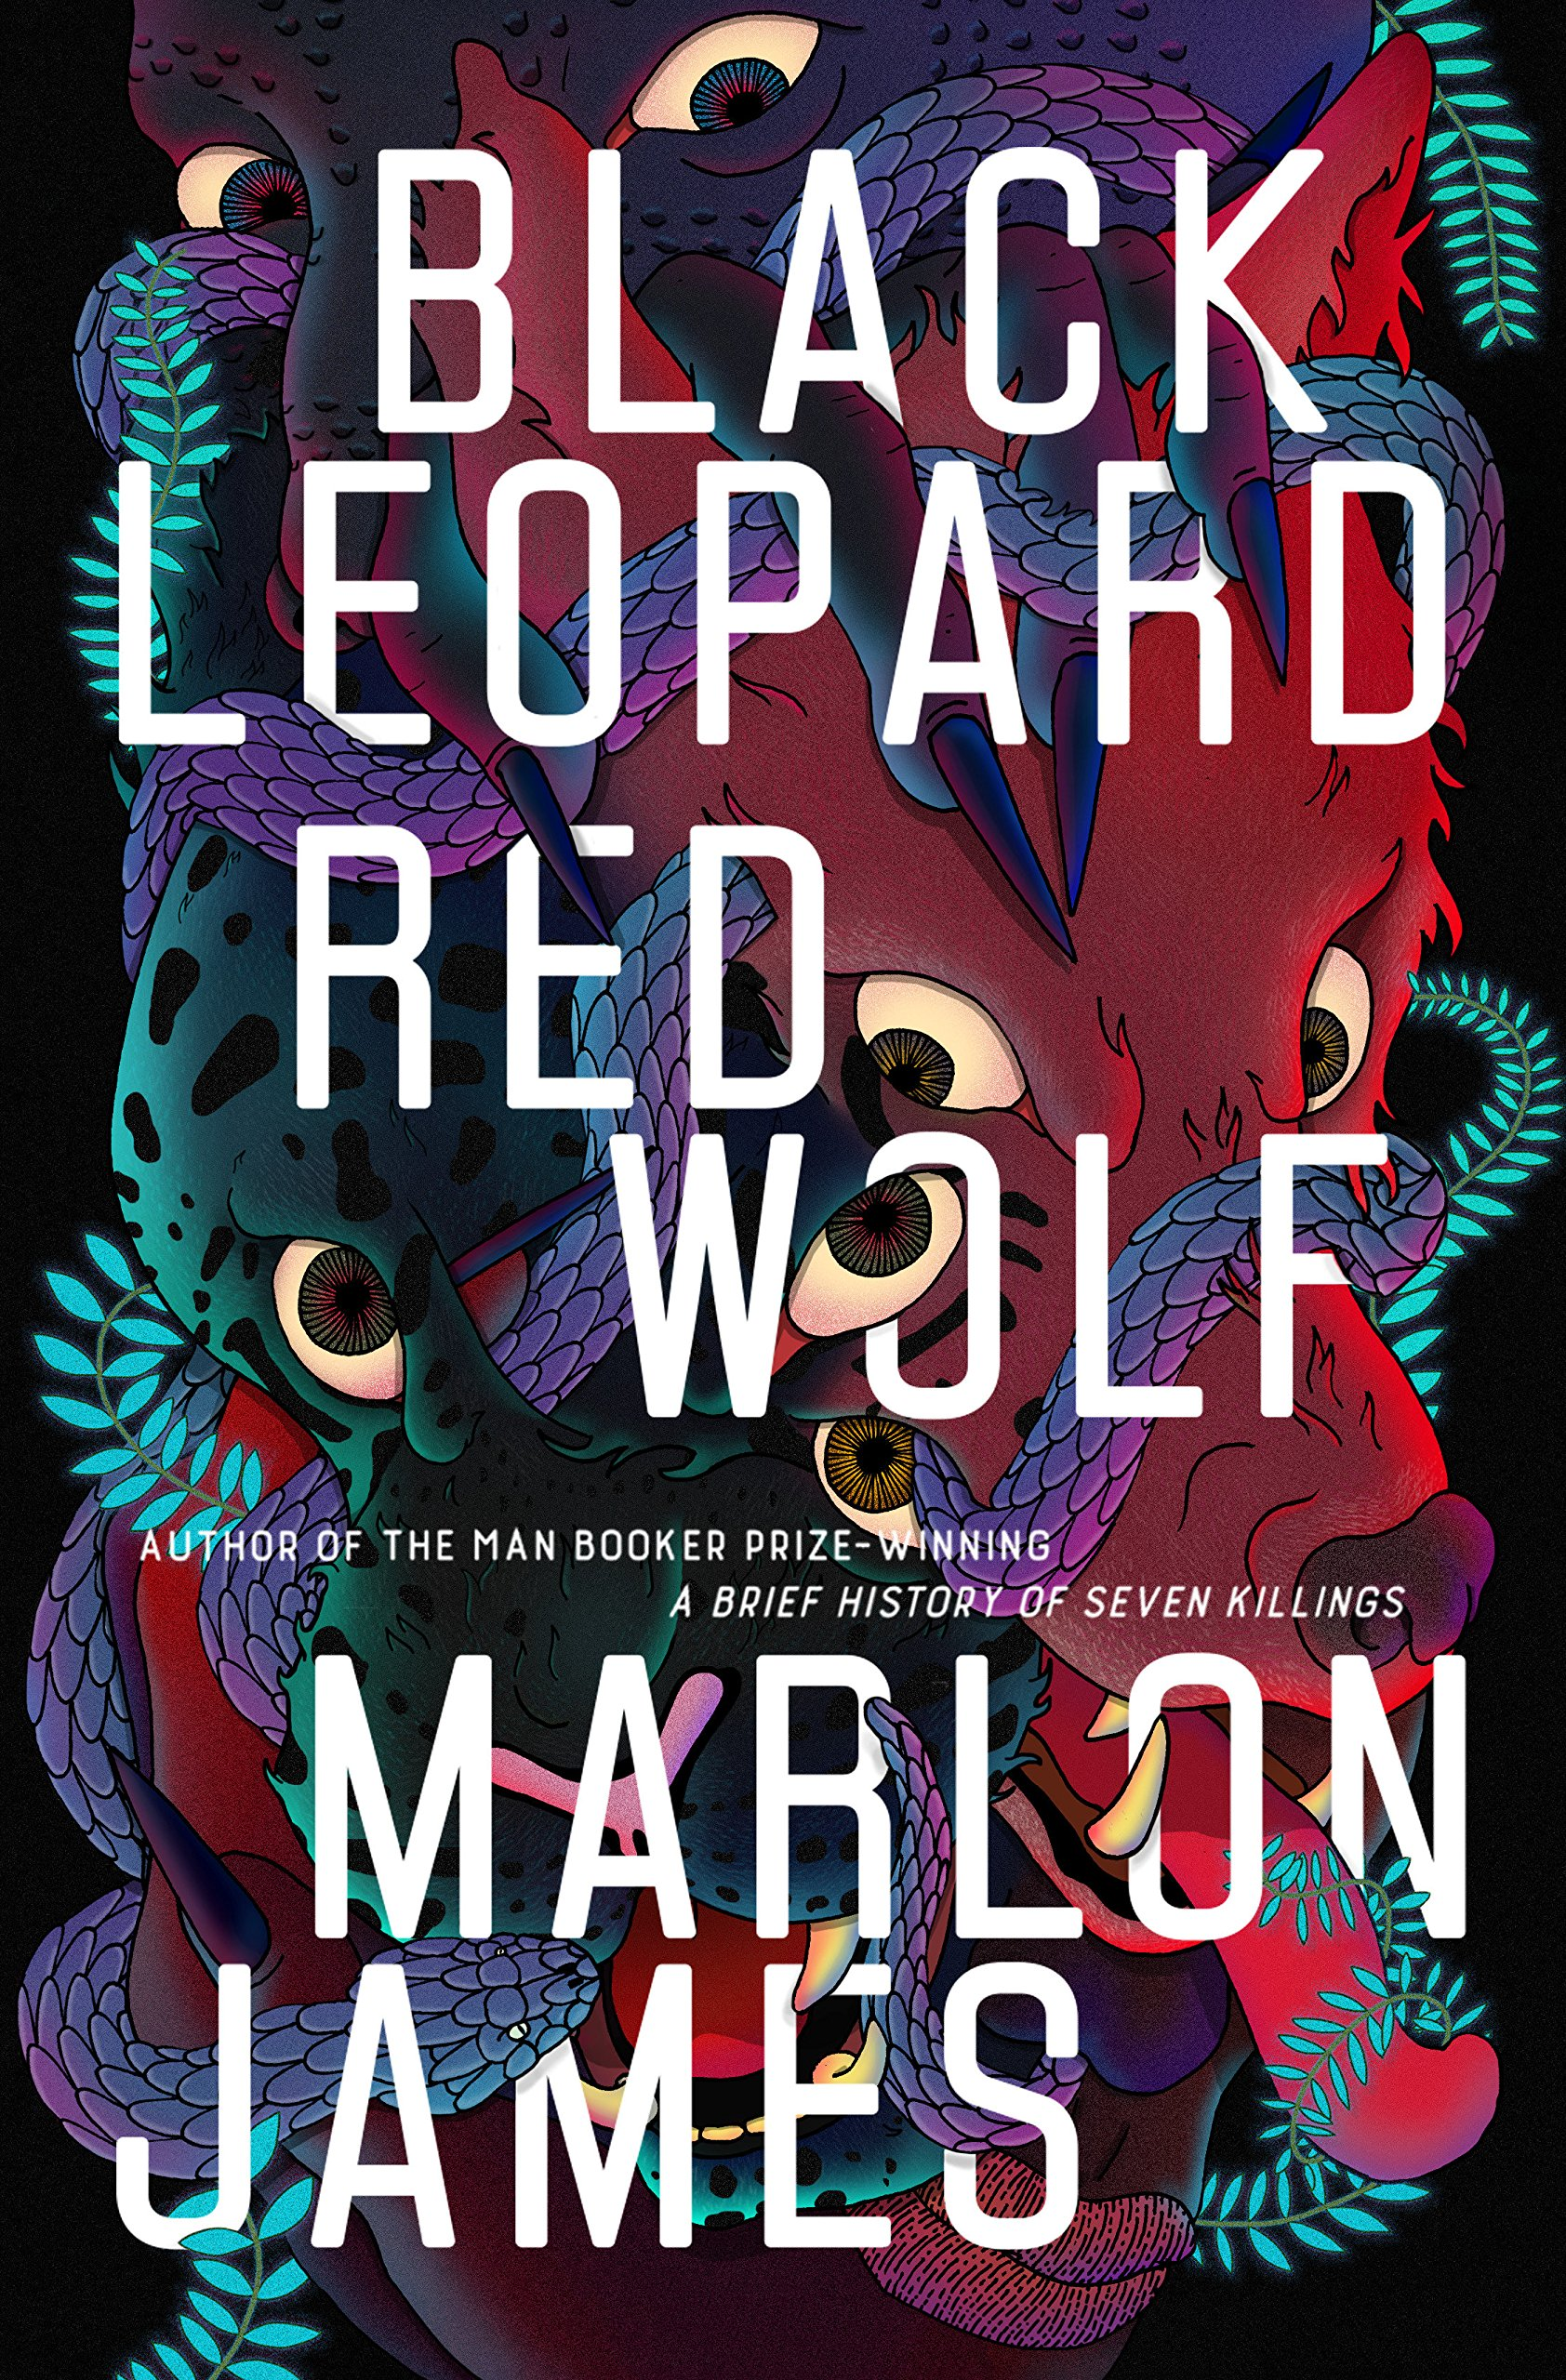 'Black Leopard, Red Wolf' by Marlon James